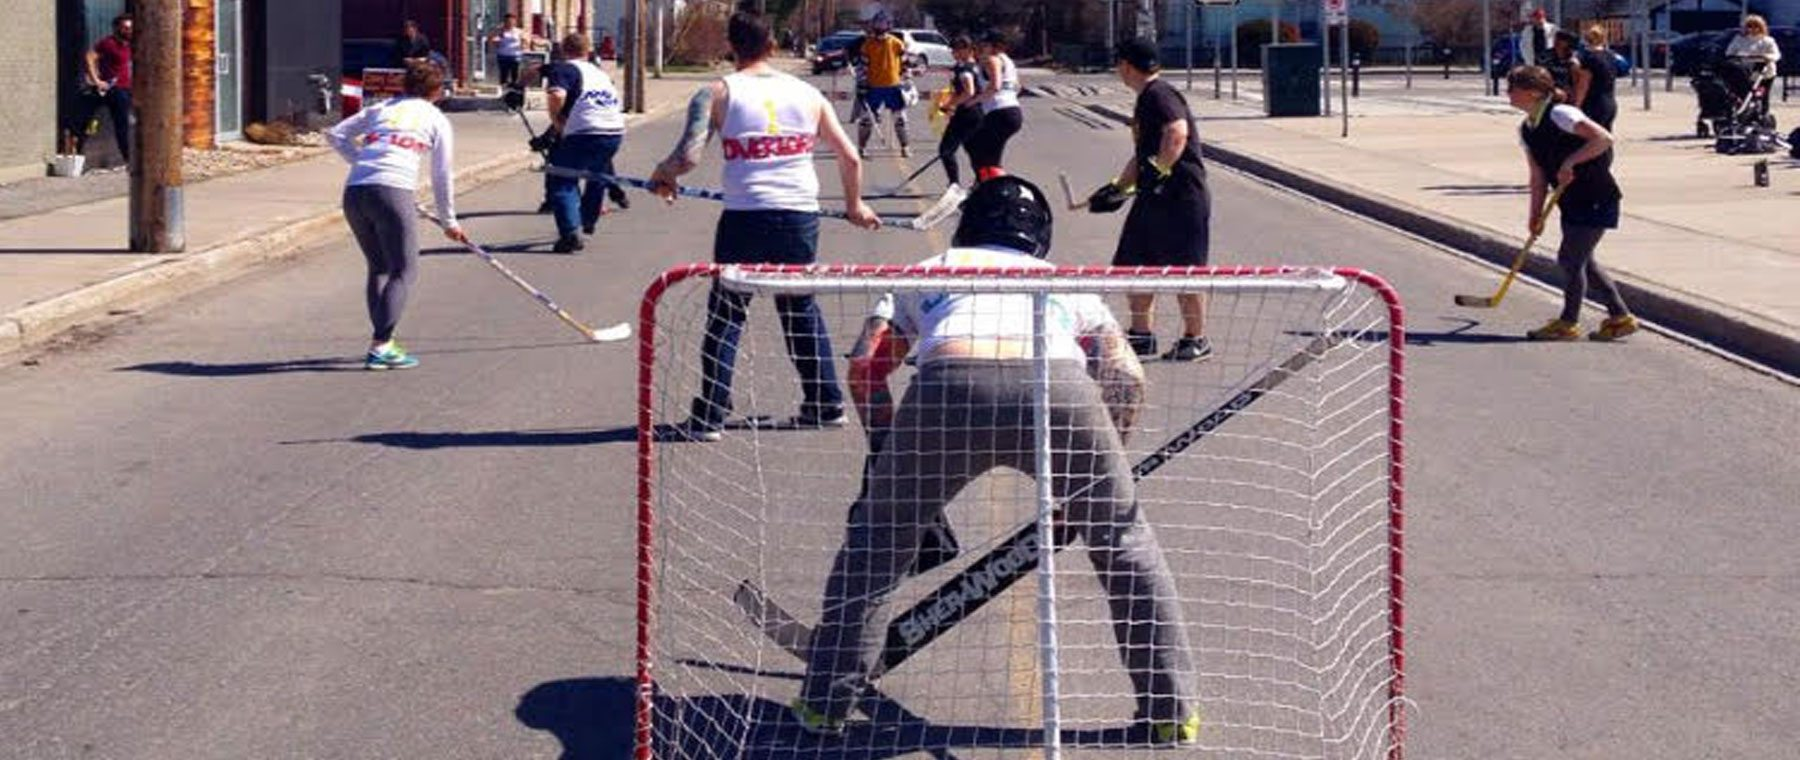 City Bites Hot Tip — Lace up! Road hockey season begins with a tourney